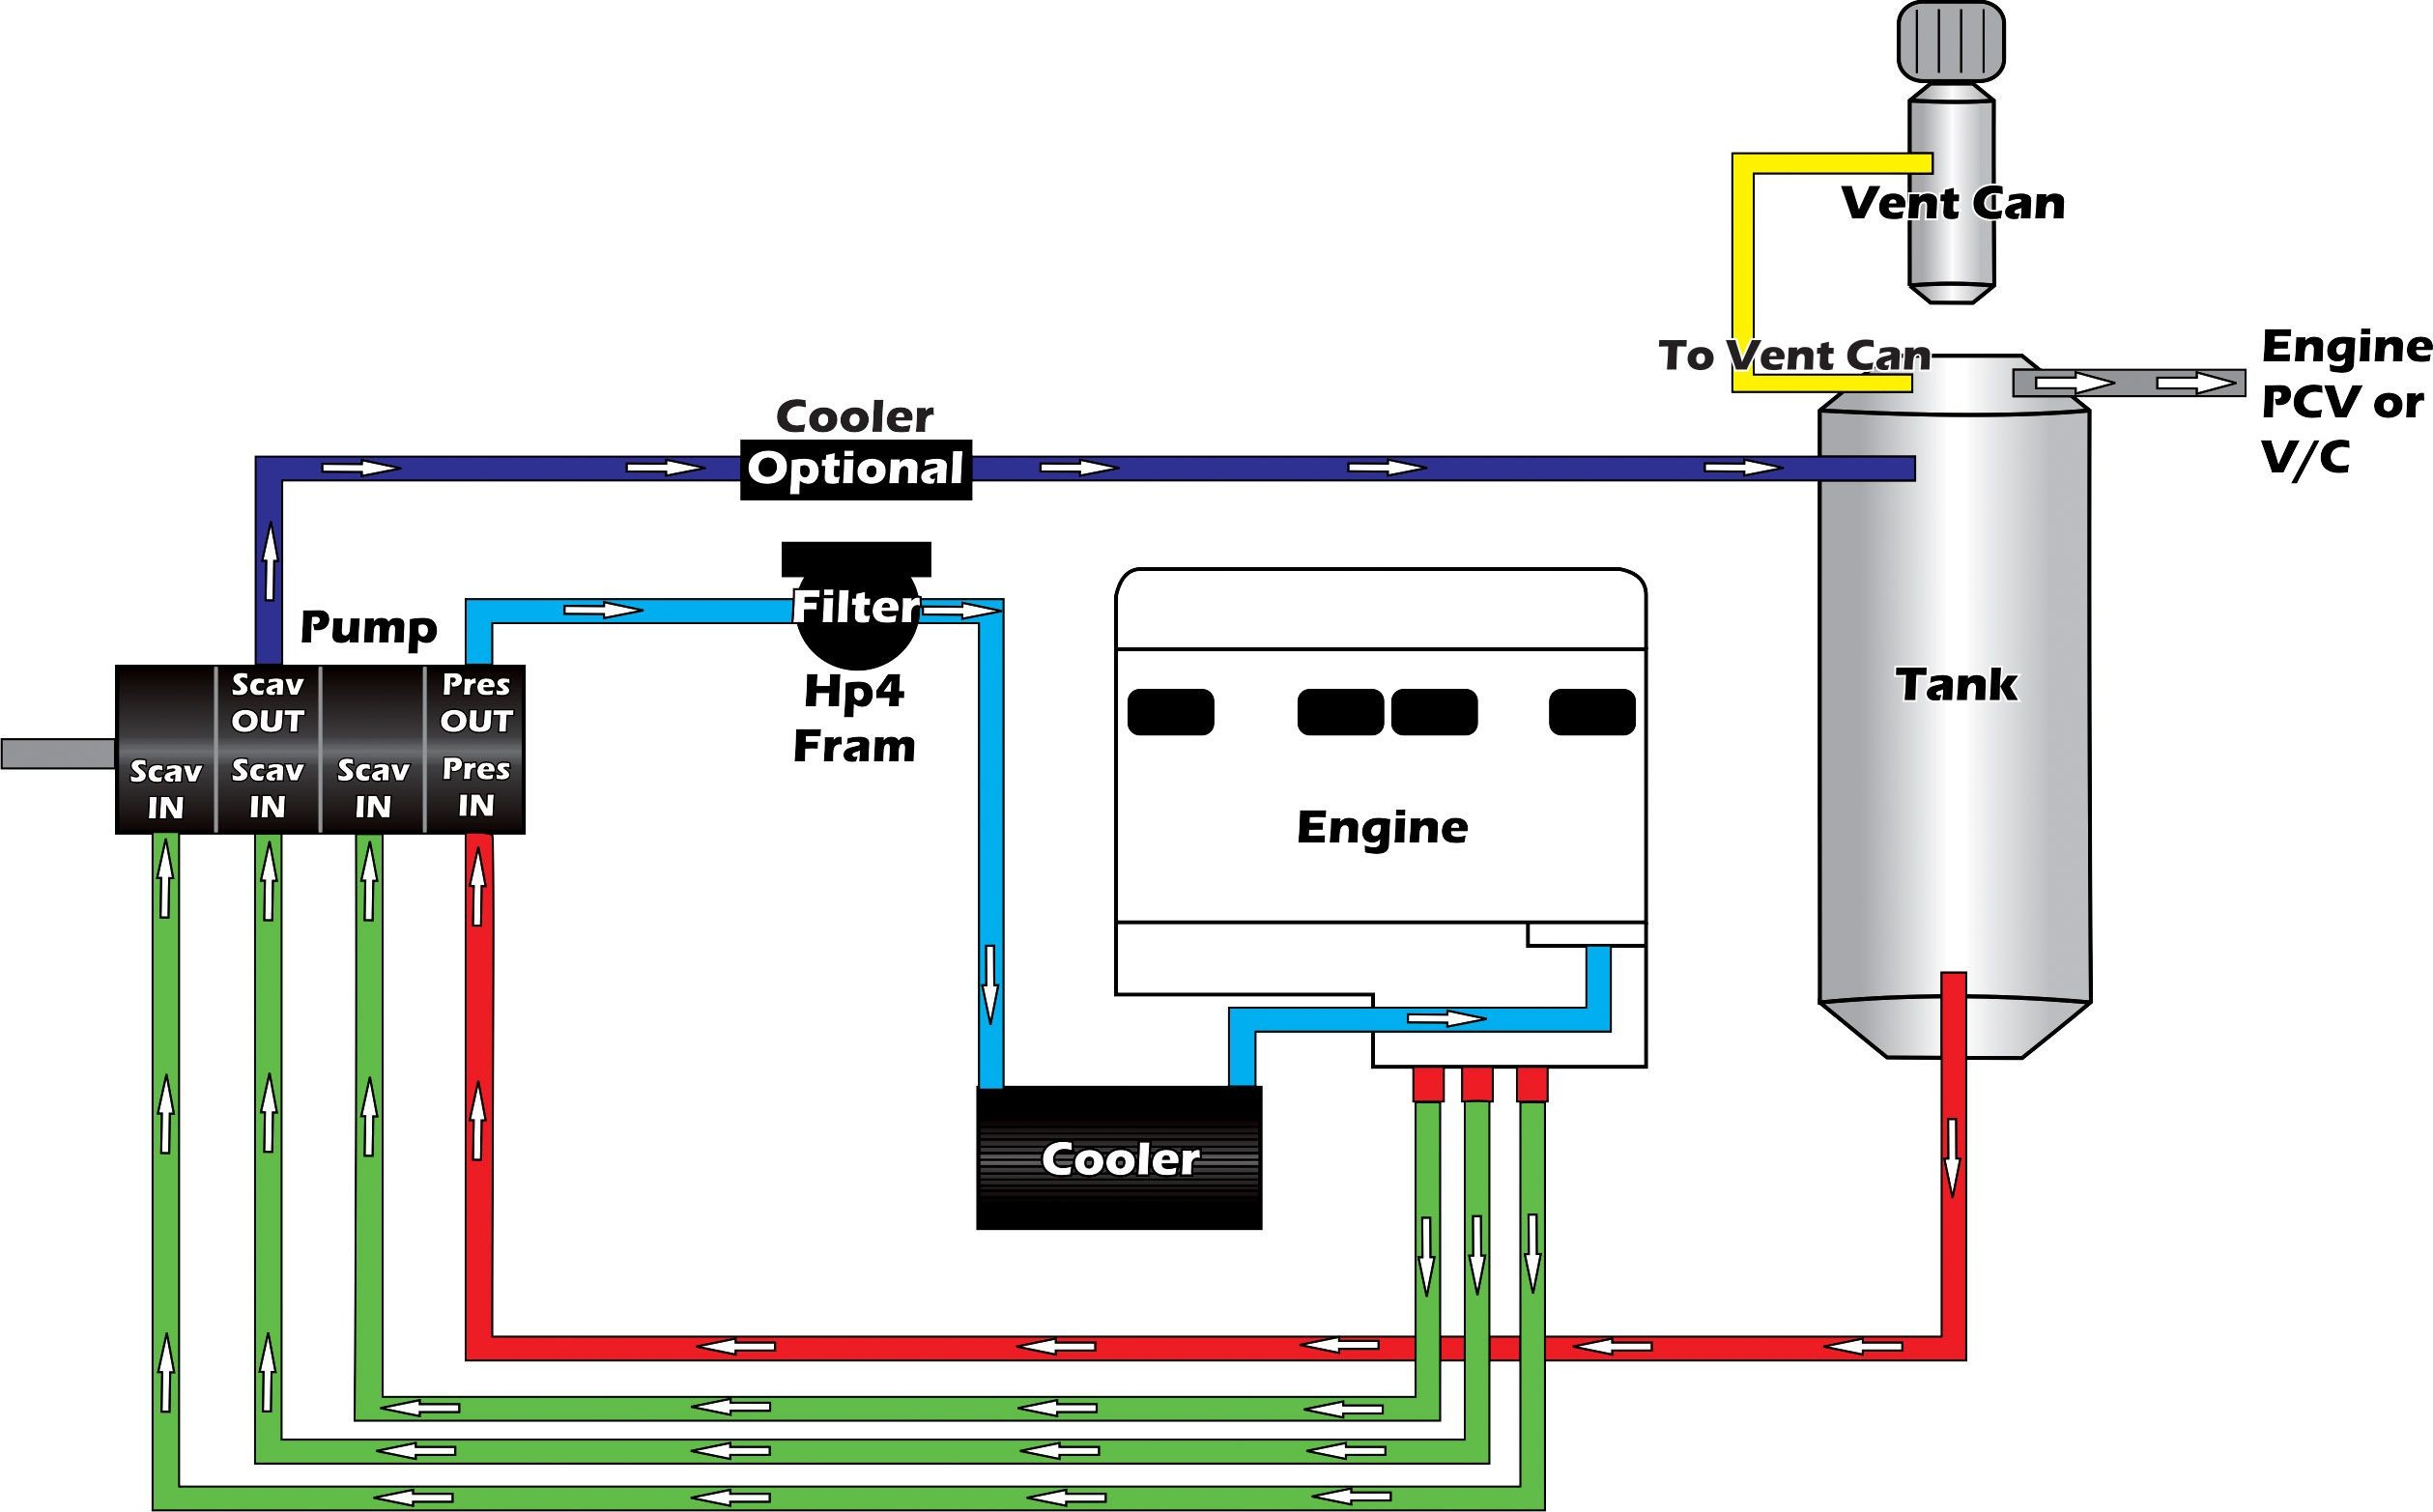 Dry Sump Oil System Diagram Plumbing Schematics Of Dry Sump Oil System Diagram